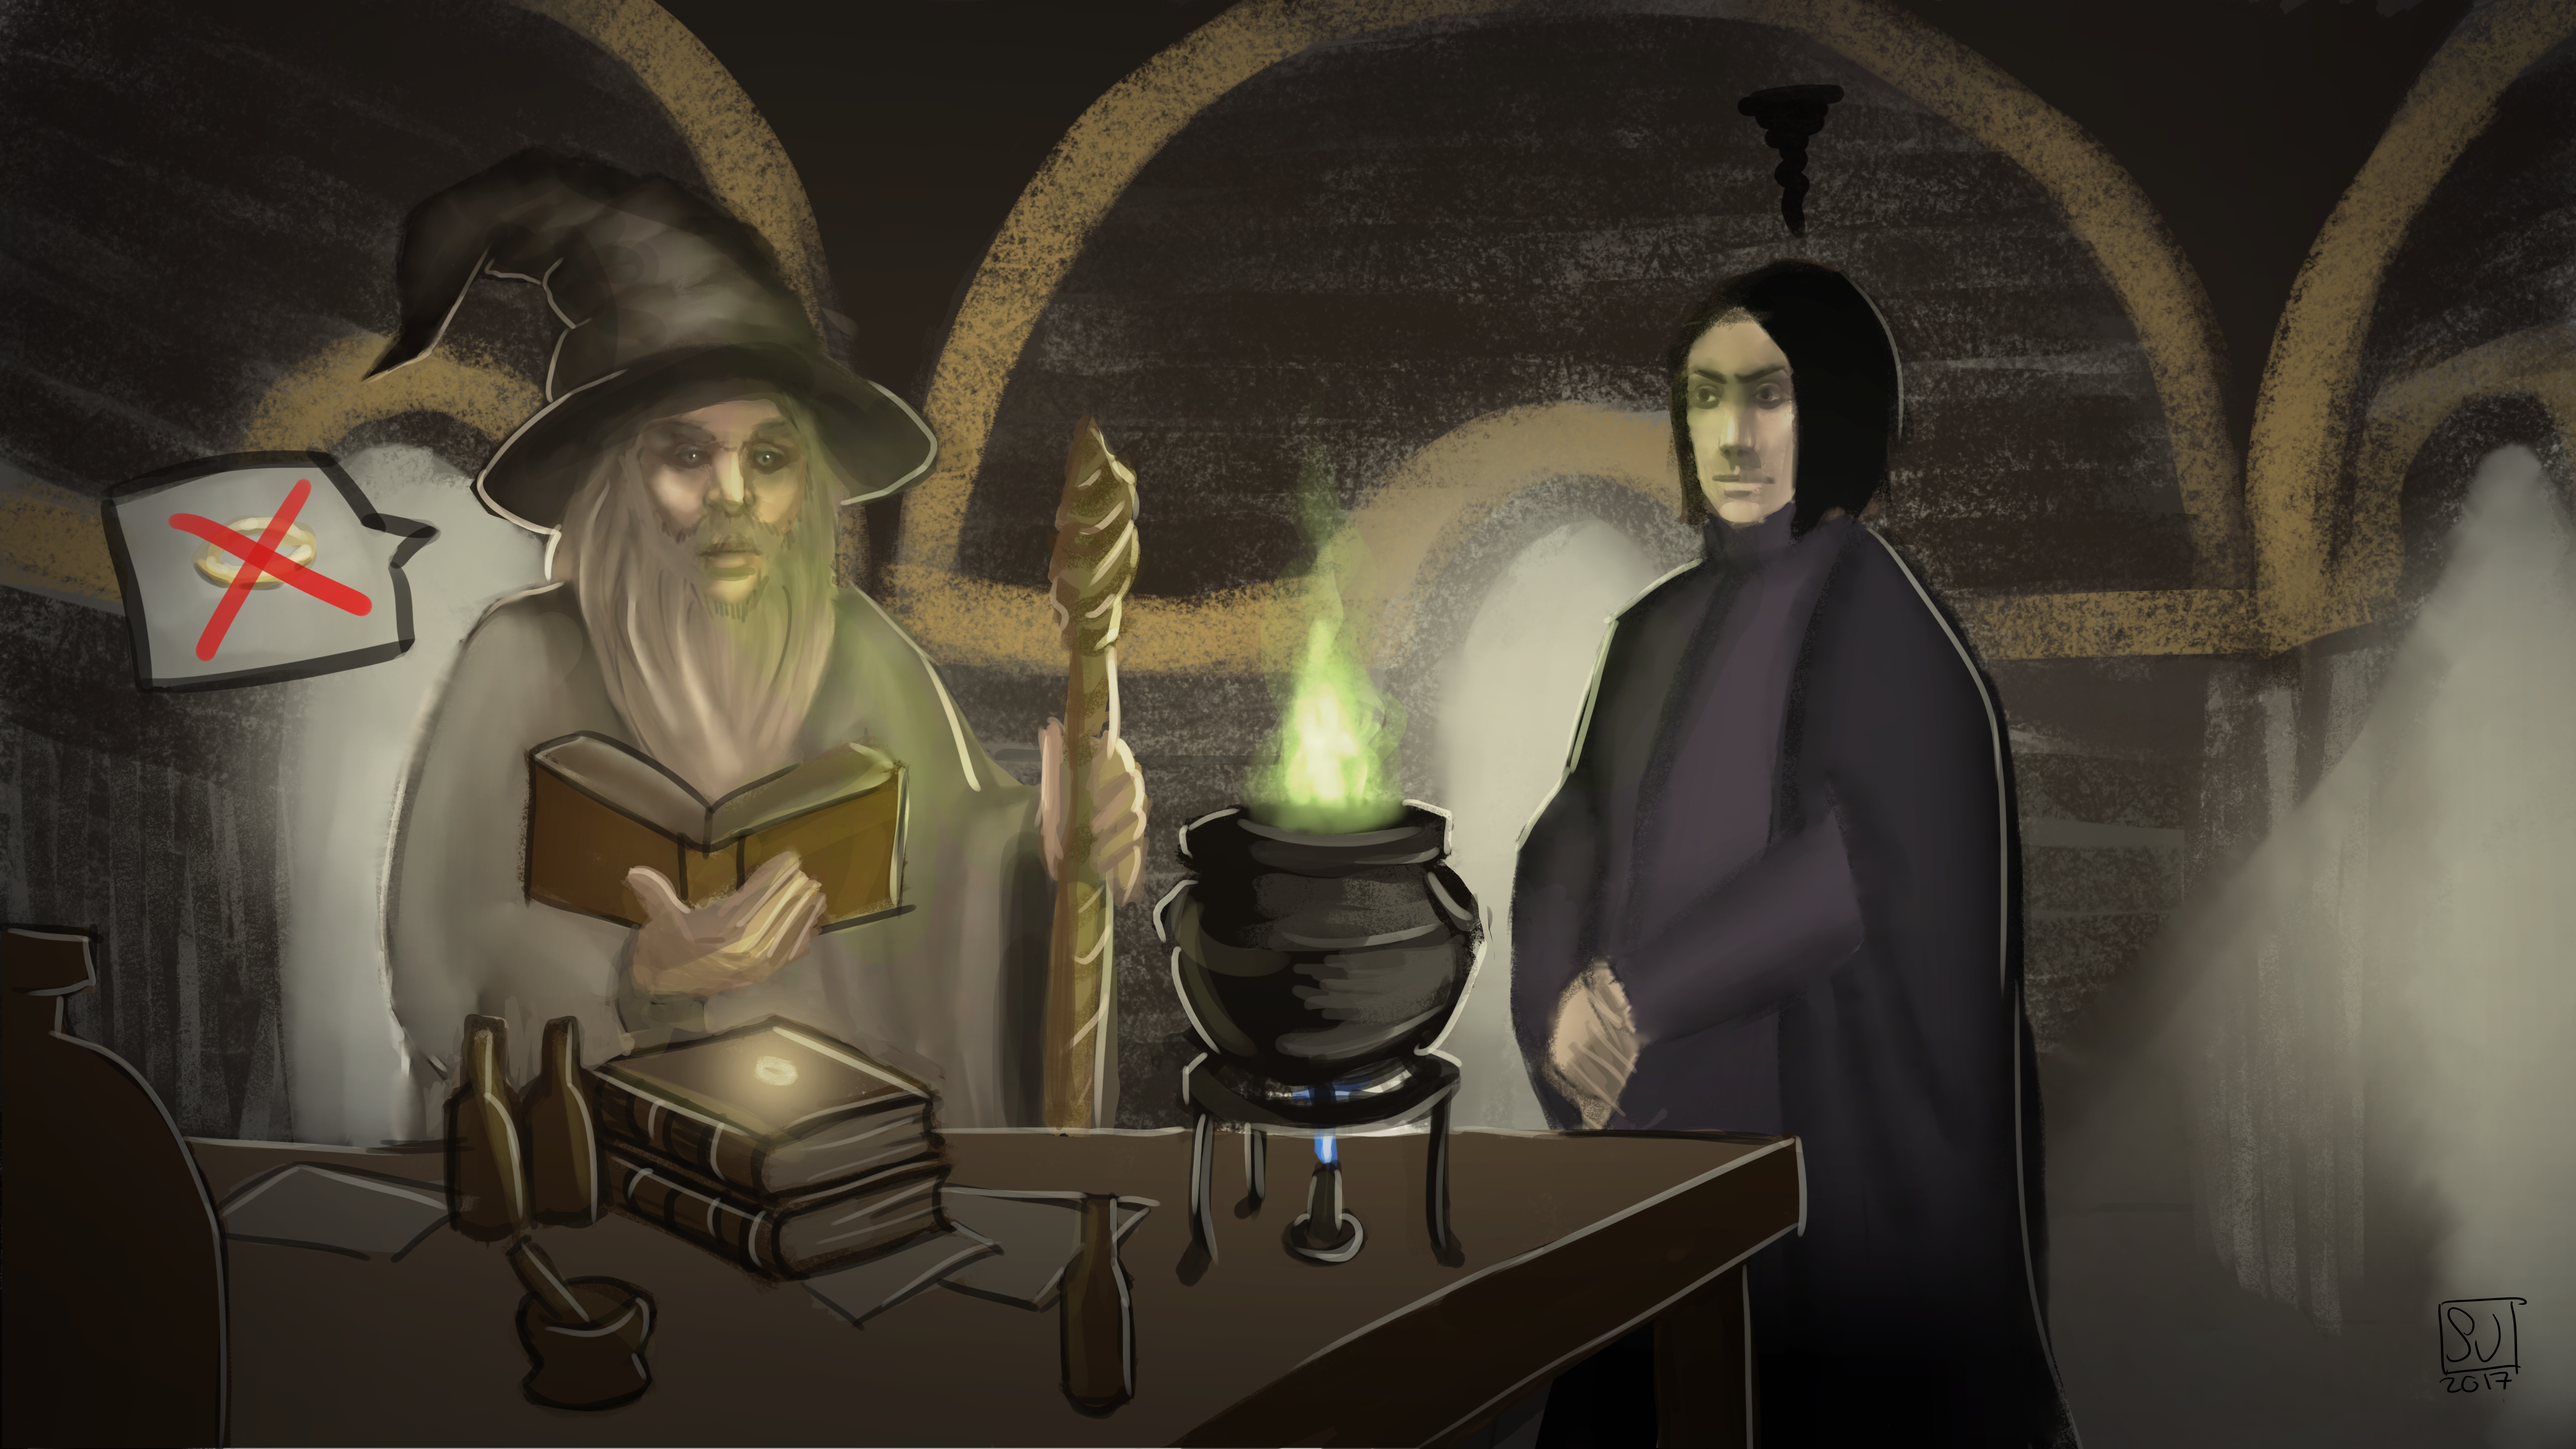 Gandalf and Snape in potion class